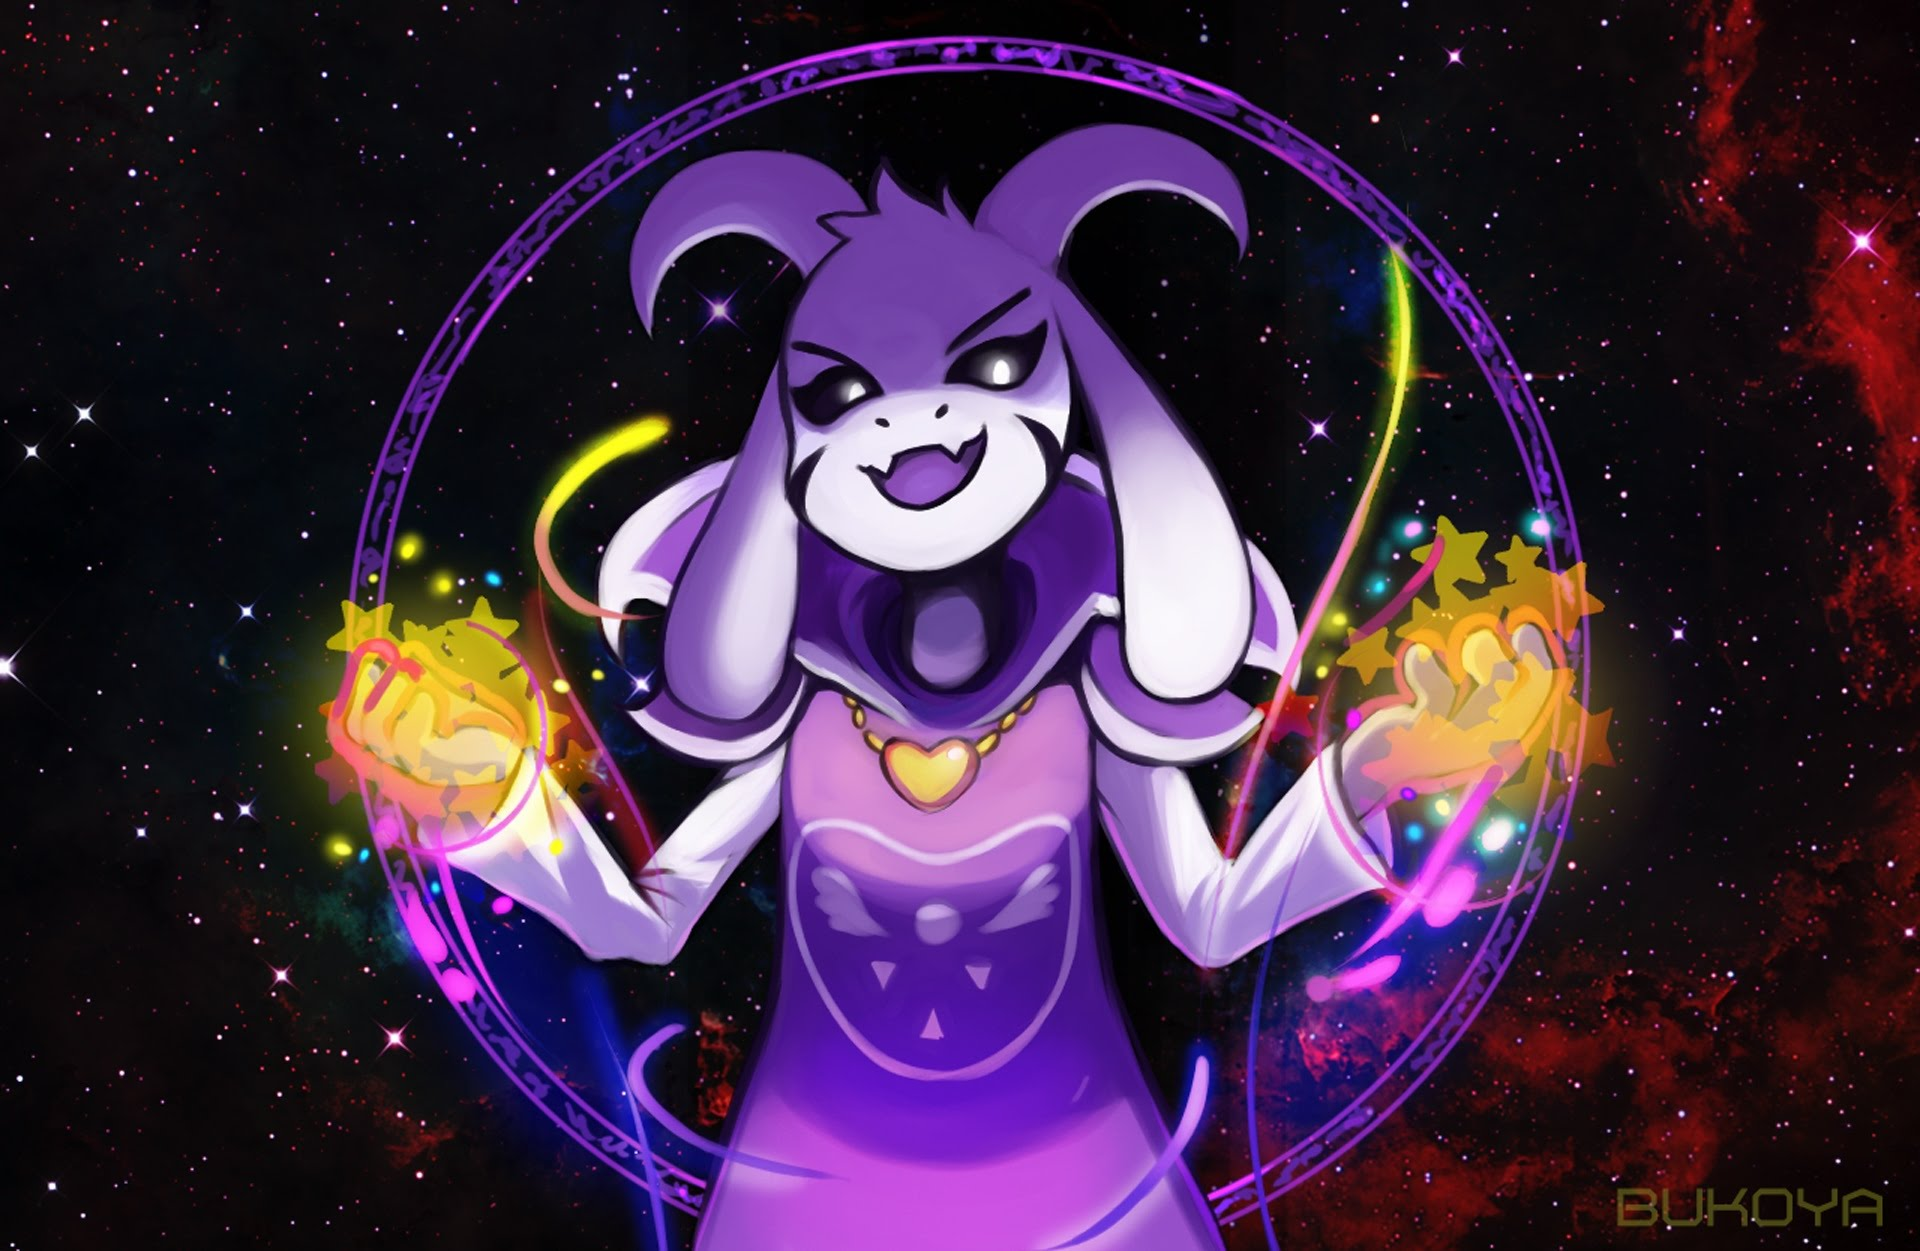 Undertale Asriel Wallpaper in addition Harley Davidson Bikes in addition Digital Vacuum Gauge Display Powered Arduino together with Two Door Tesla Model S Coupe Unveiled By Nce additionally Ios 11 4k 5k 13656. on electric car nature